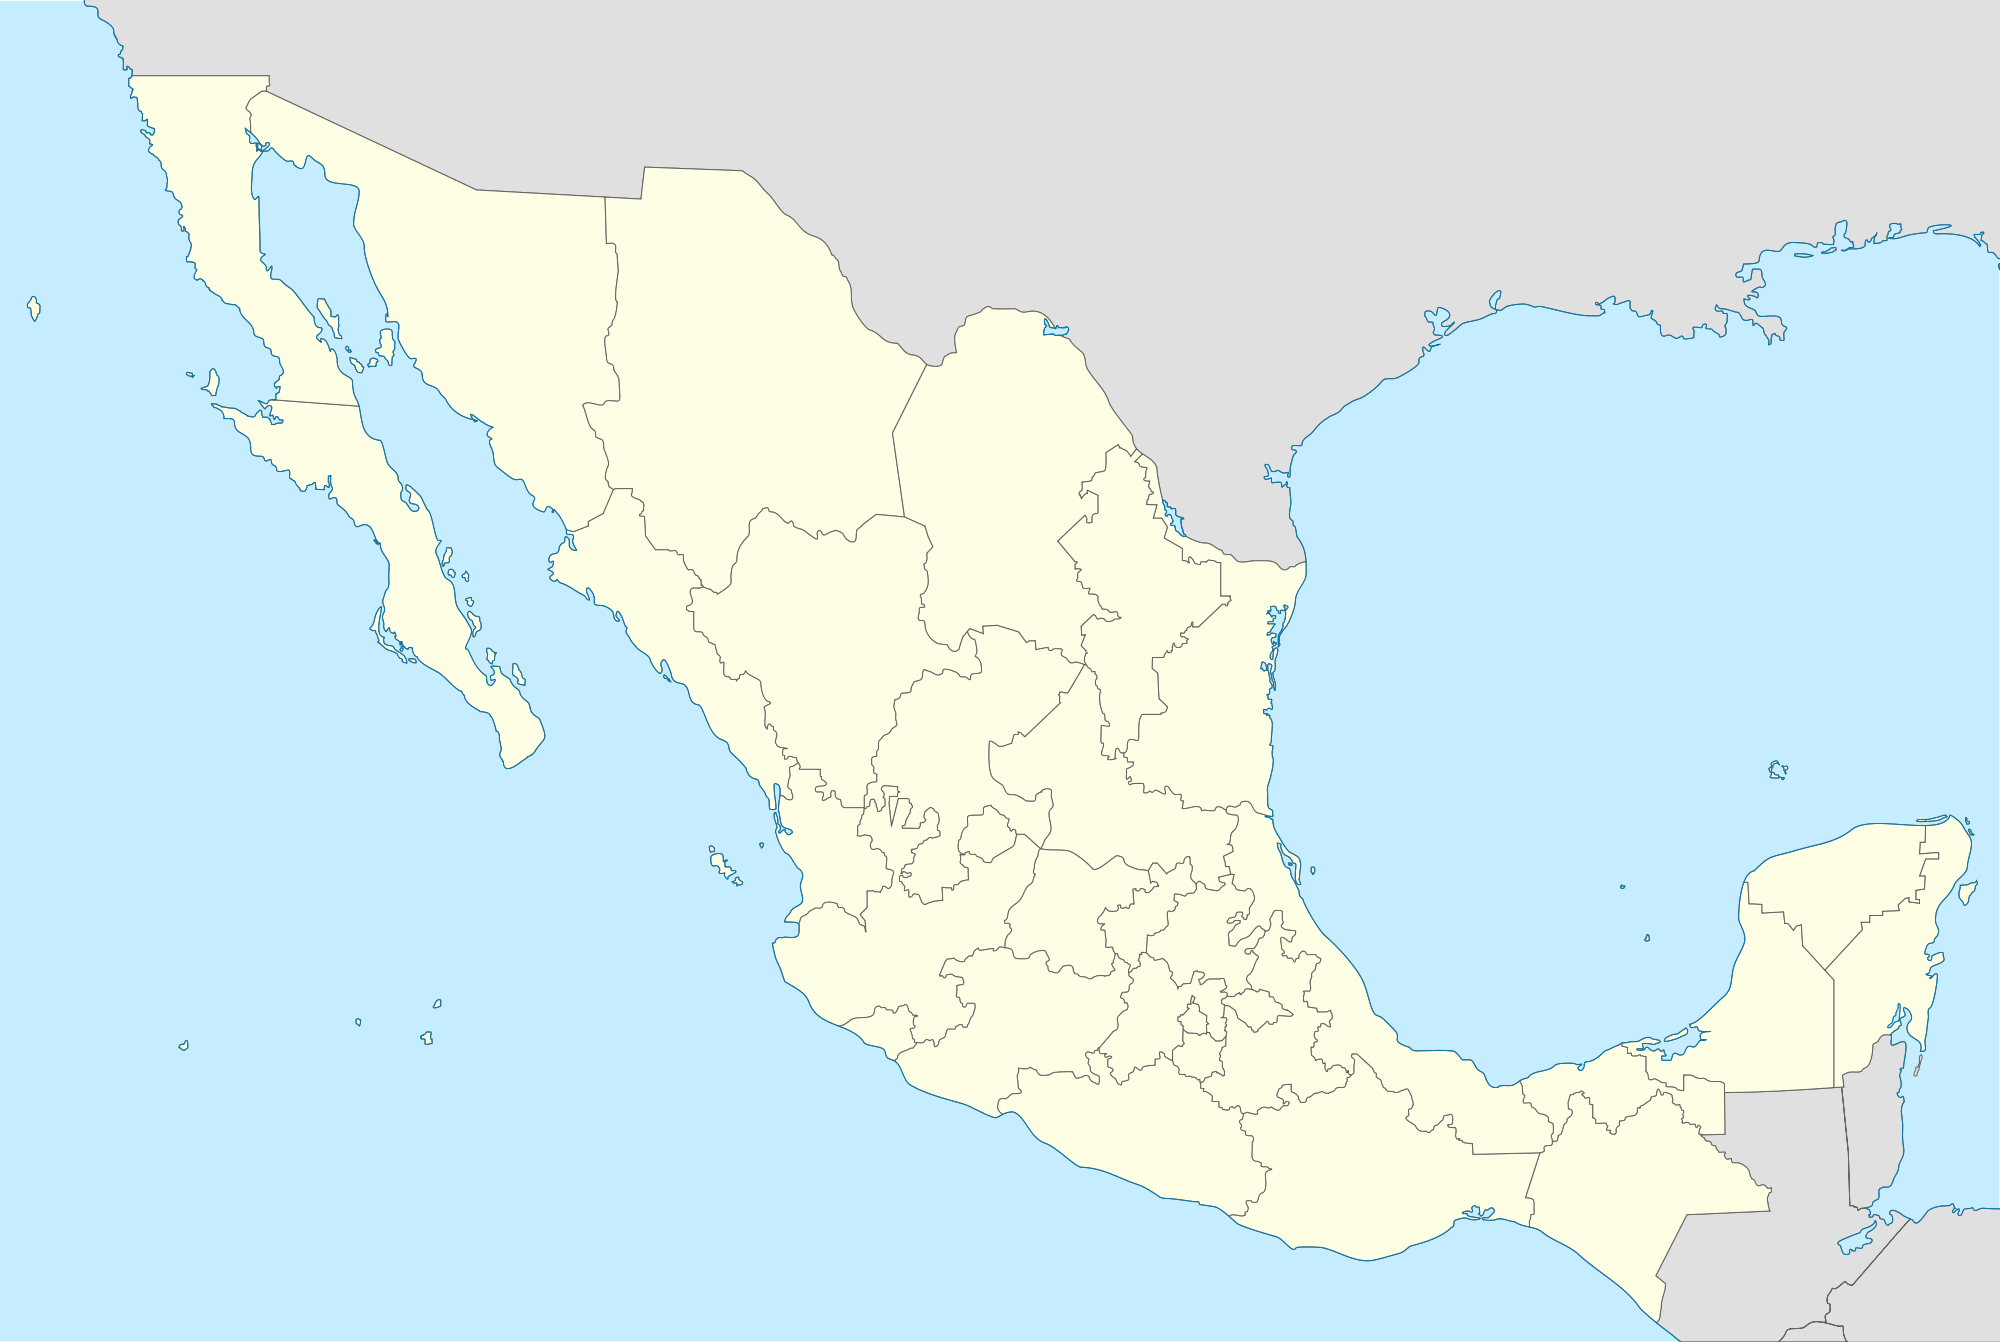 Mexico States Blank Map • Mapsof.net